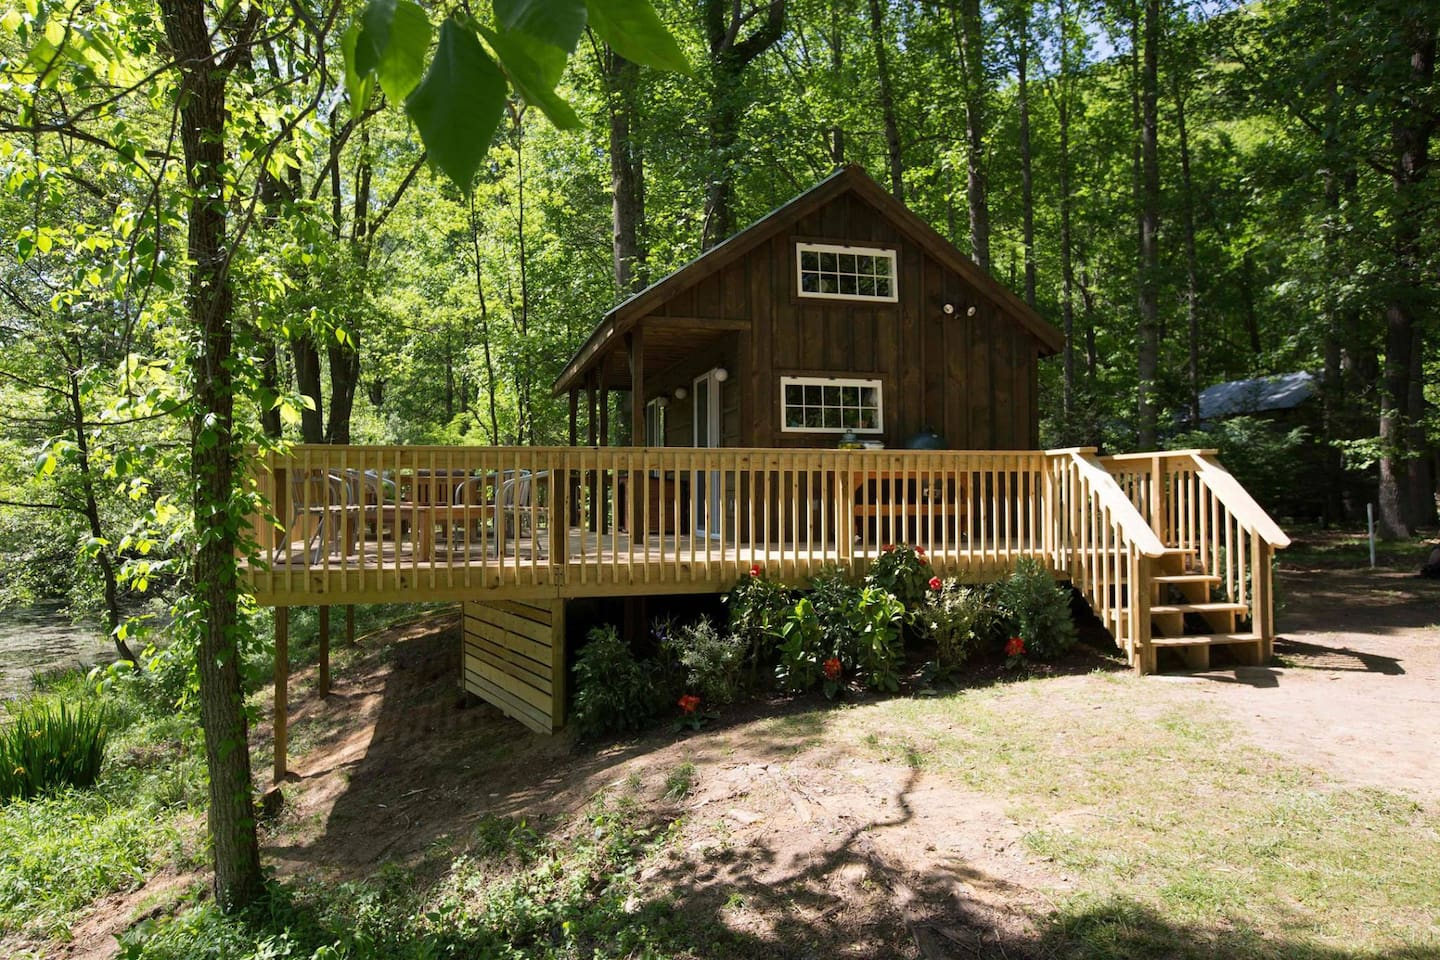 River cabin from tiny house nation in erwin for River cabin plans